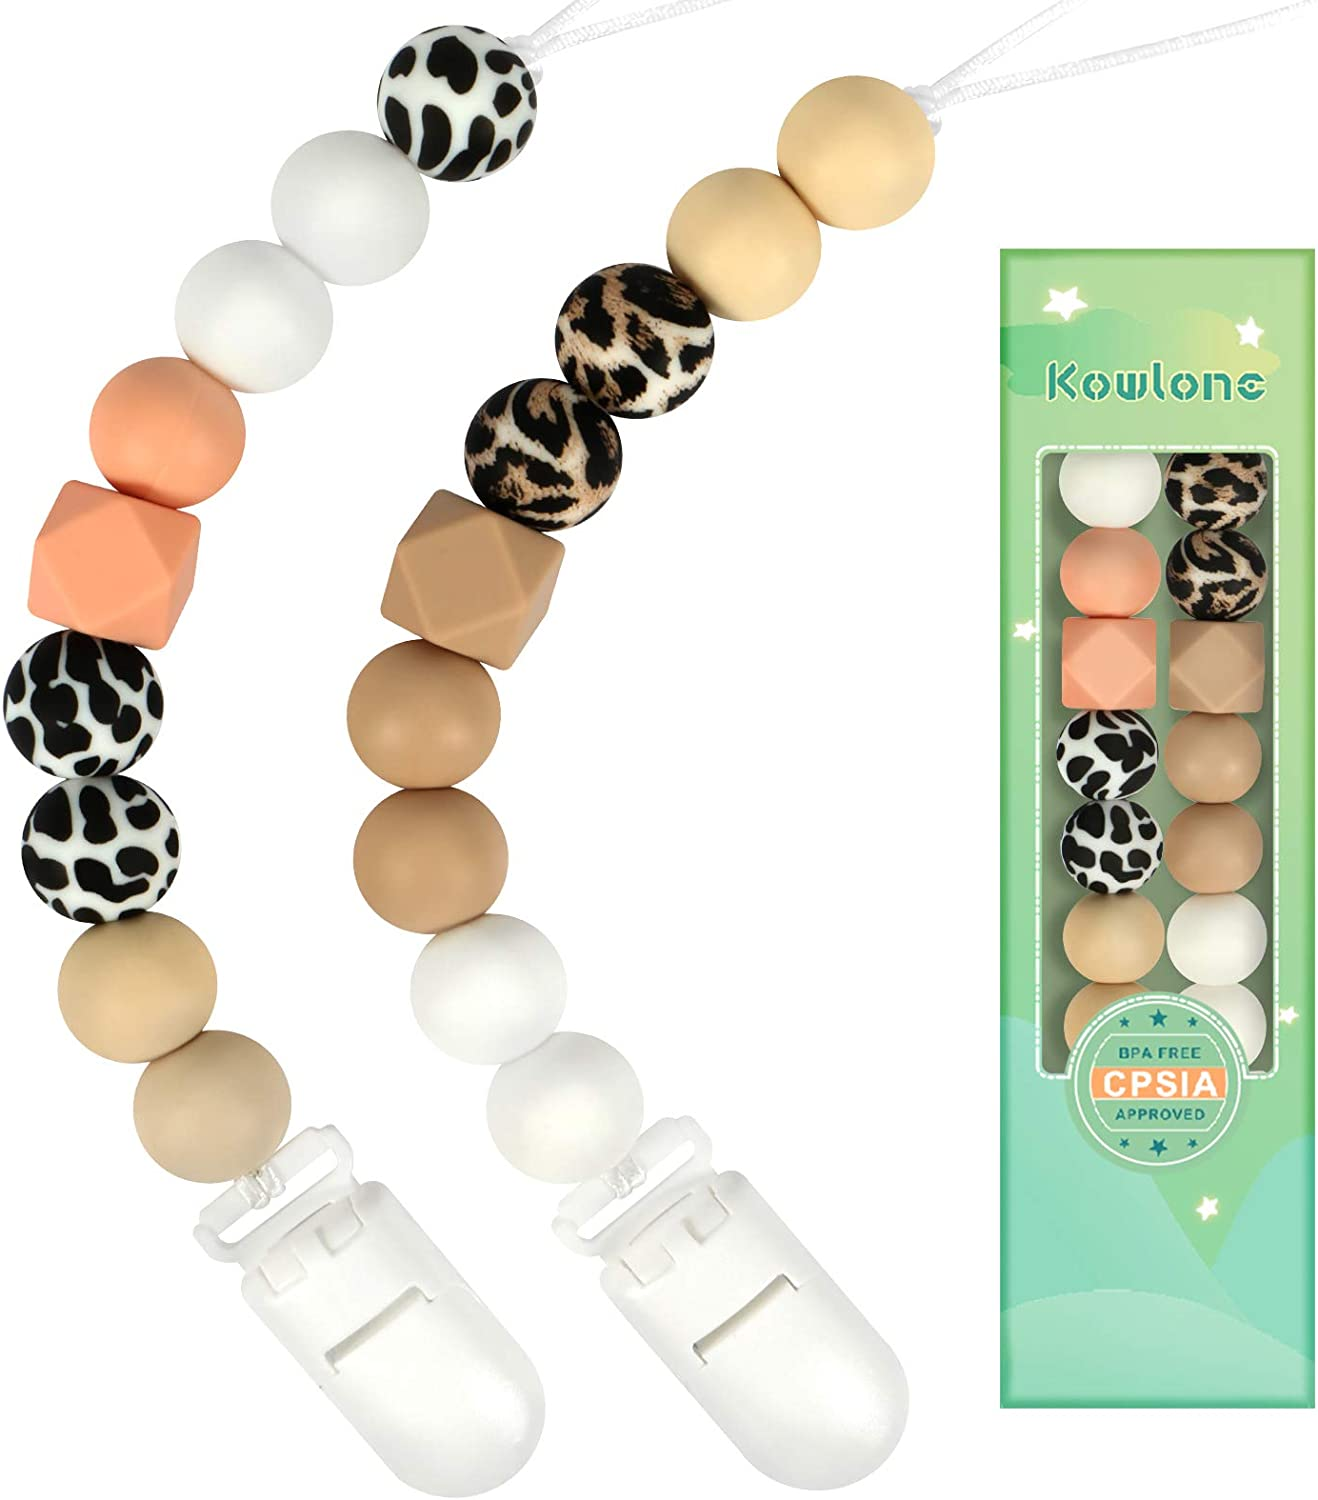 Dummy Clips Boys Girls Soother Pacifier Chain Holder Clips Leopard Cow Print Silicone Teething Beads Binky Holder Set for Baby Unisex Newborn Dummies BPA Free